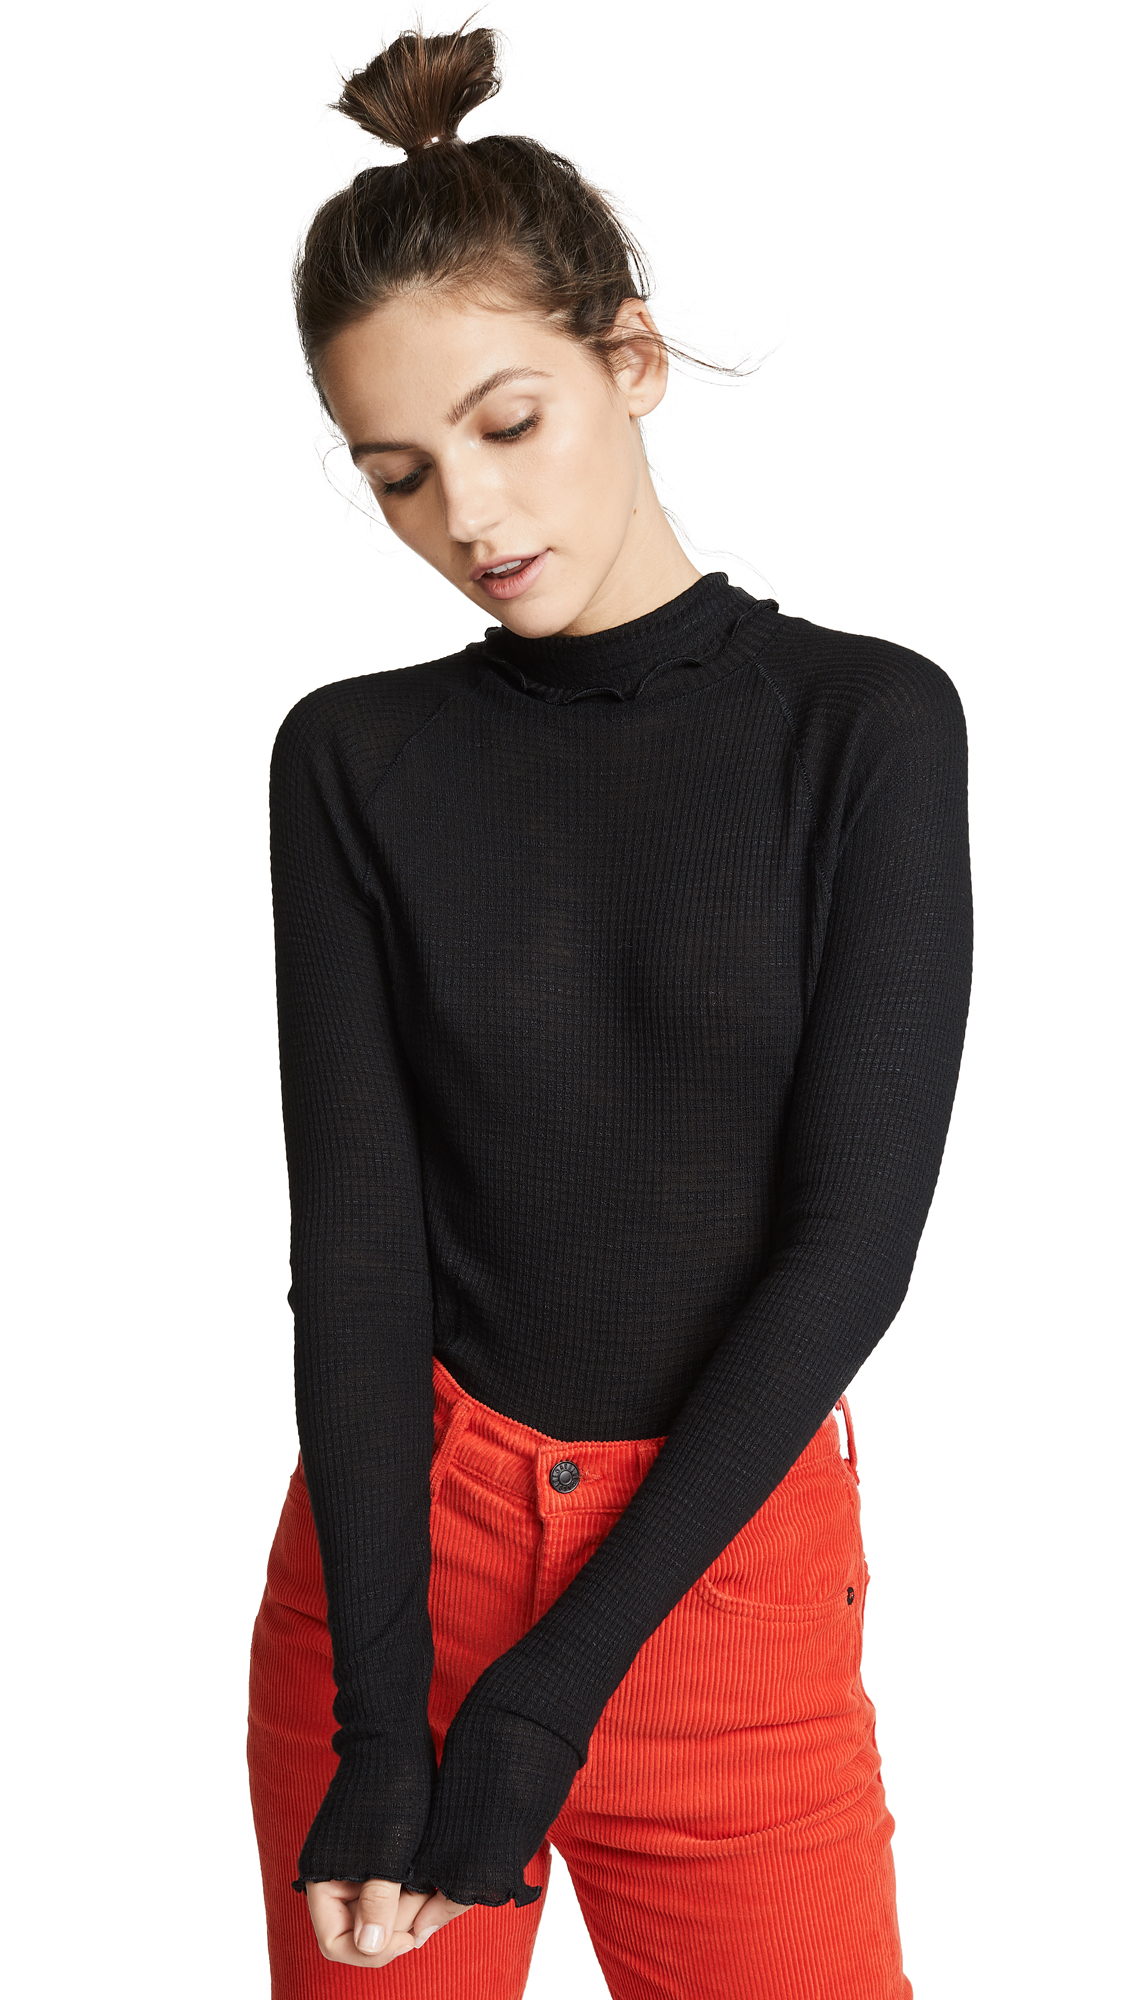 Free People Make It Easy Thermal Sweater - Black